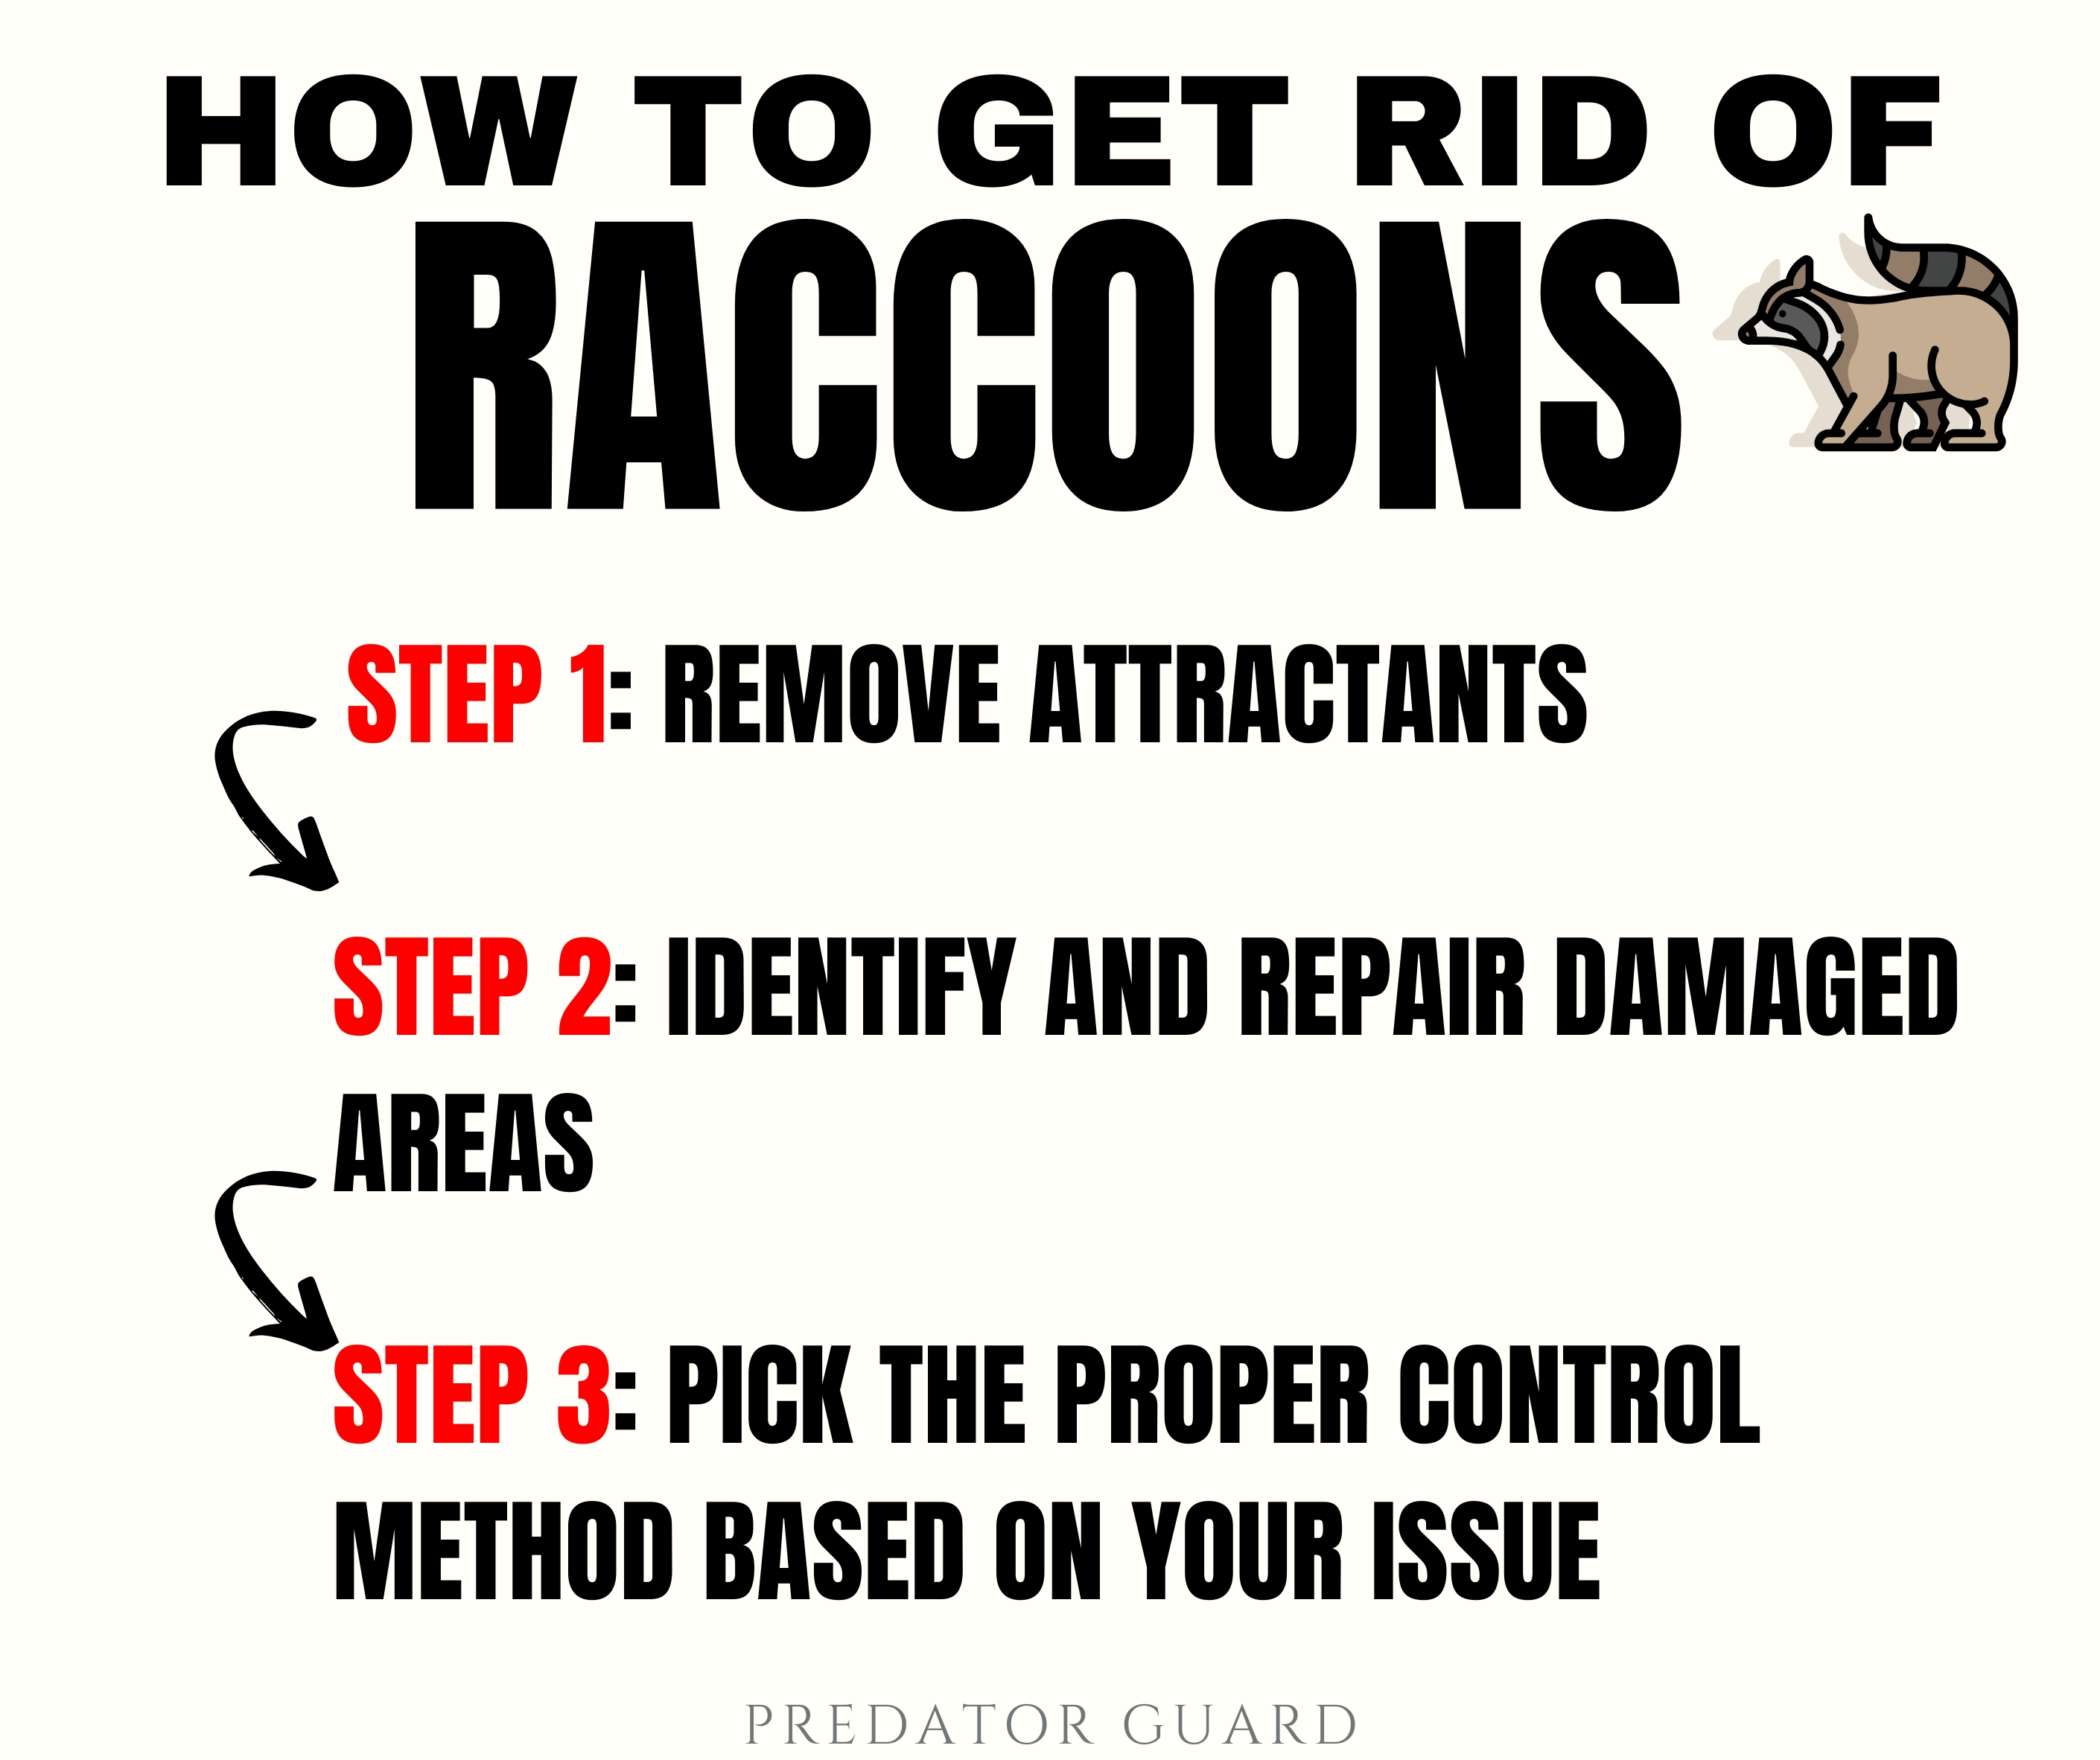 How to Get Rid of Raccoons Infographic